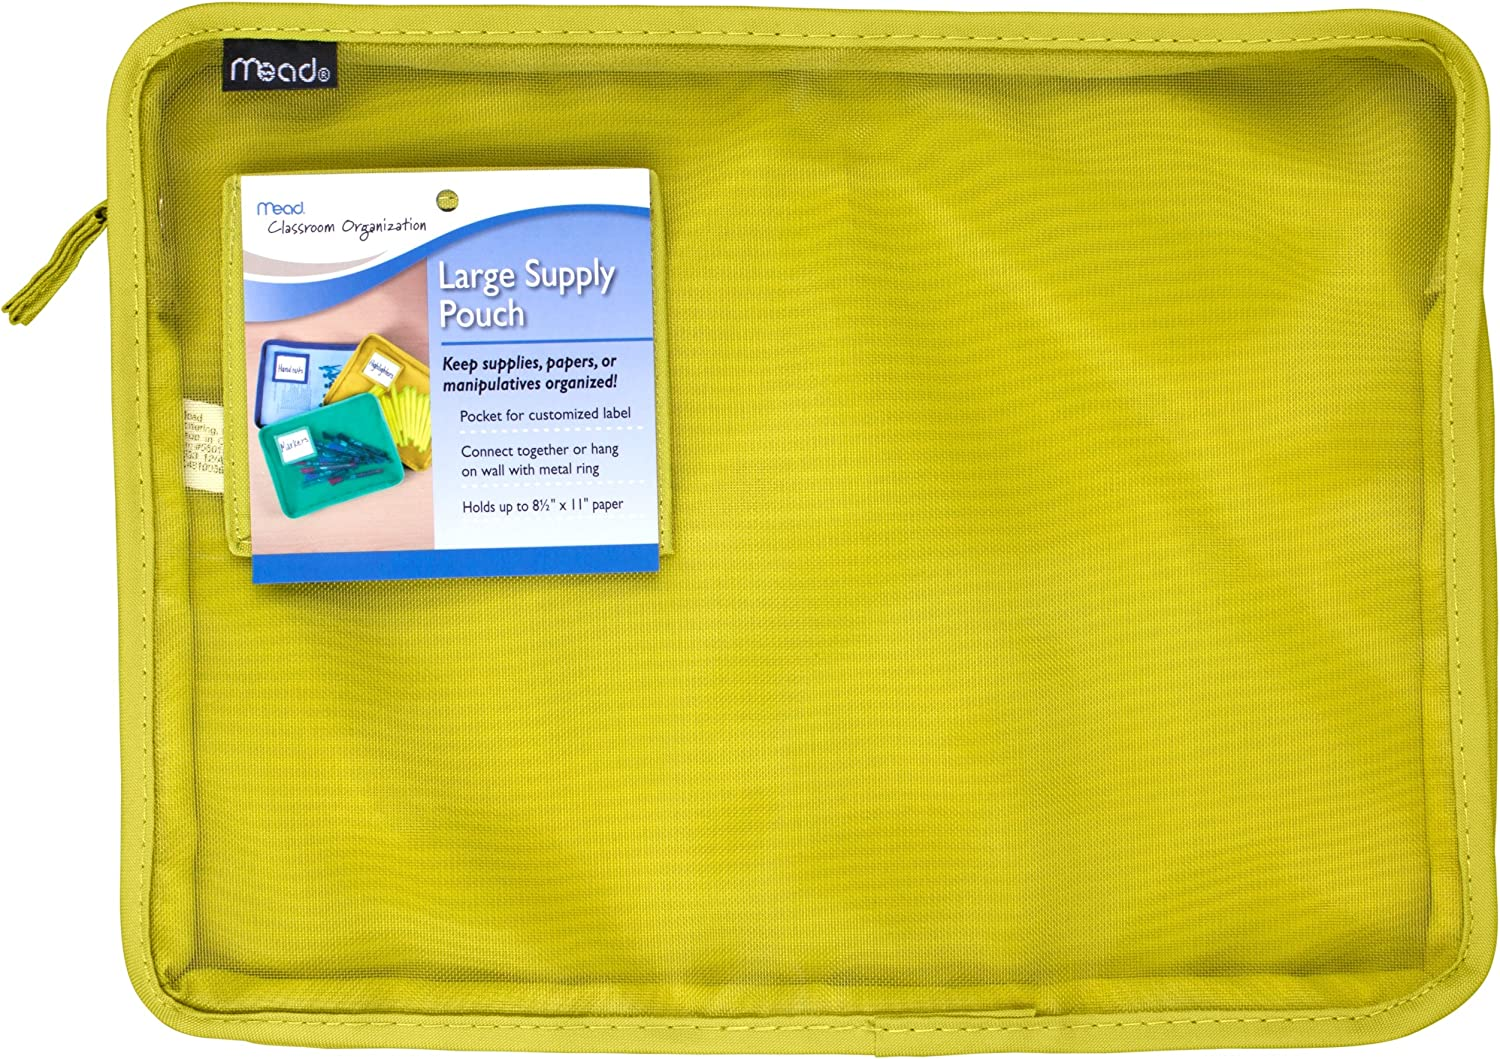 Mead Large Supply Pouch, Green (72294)